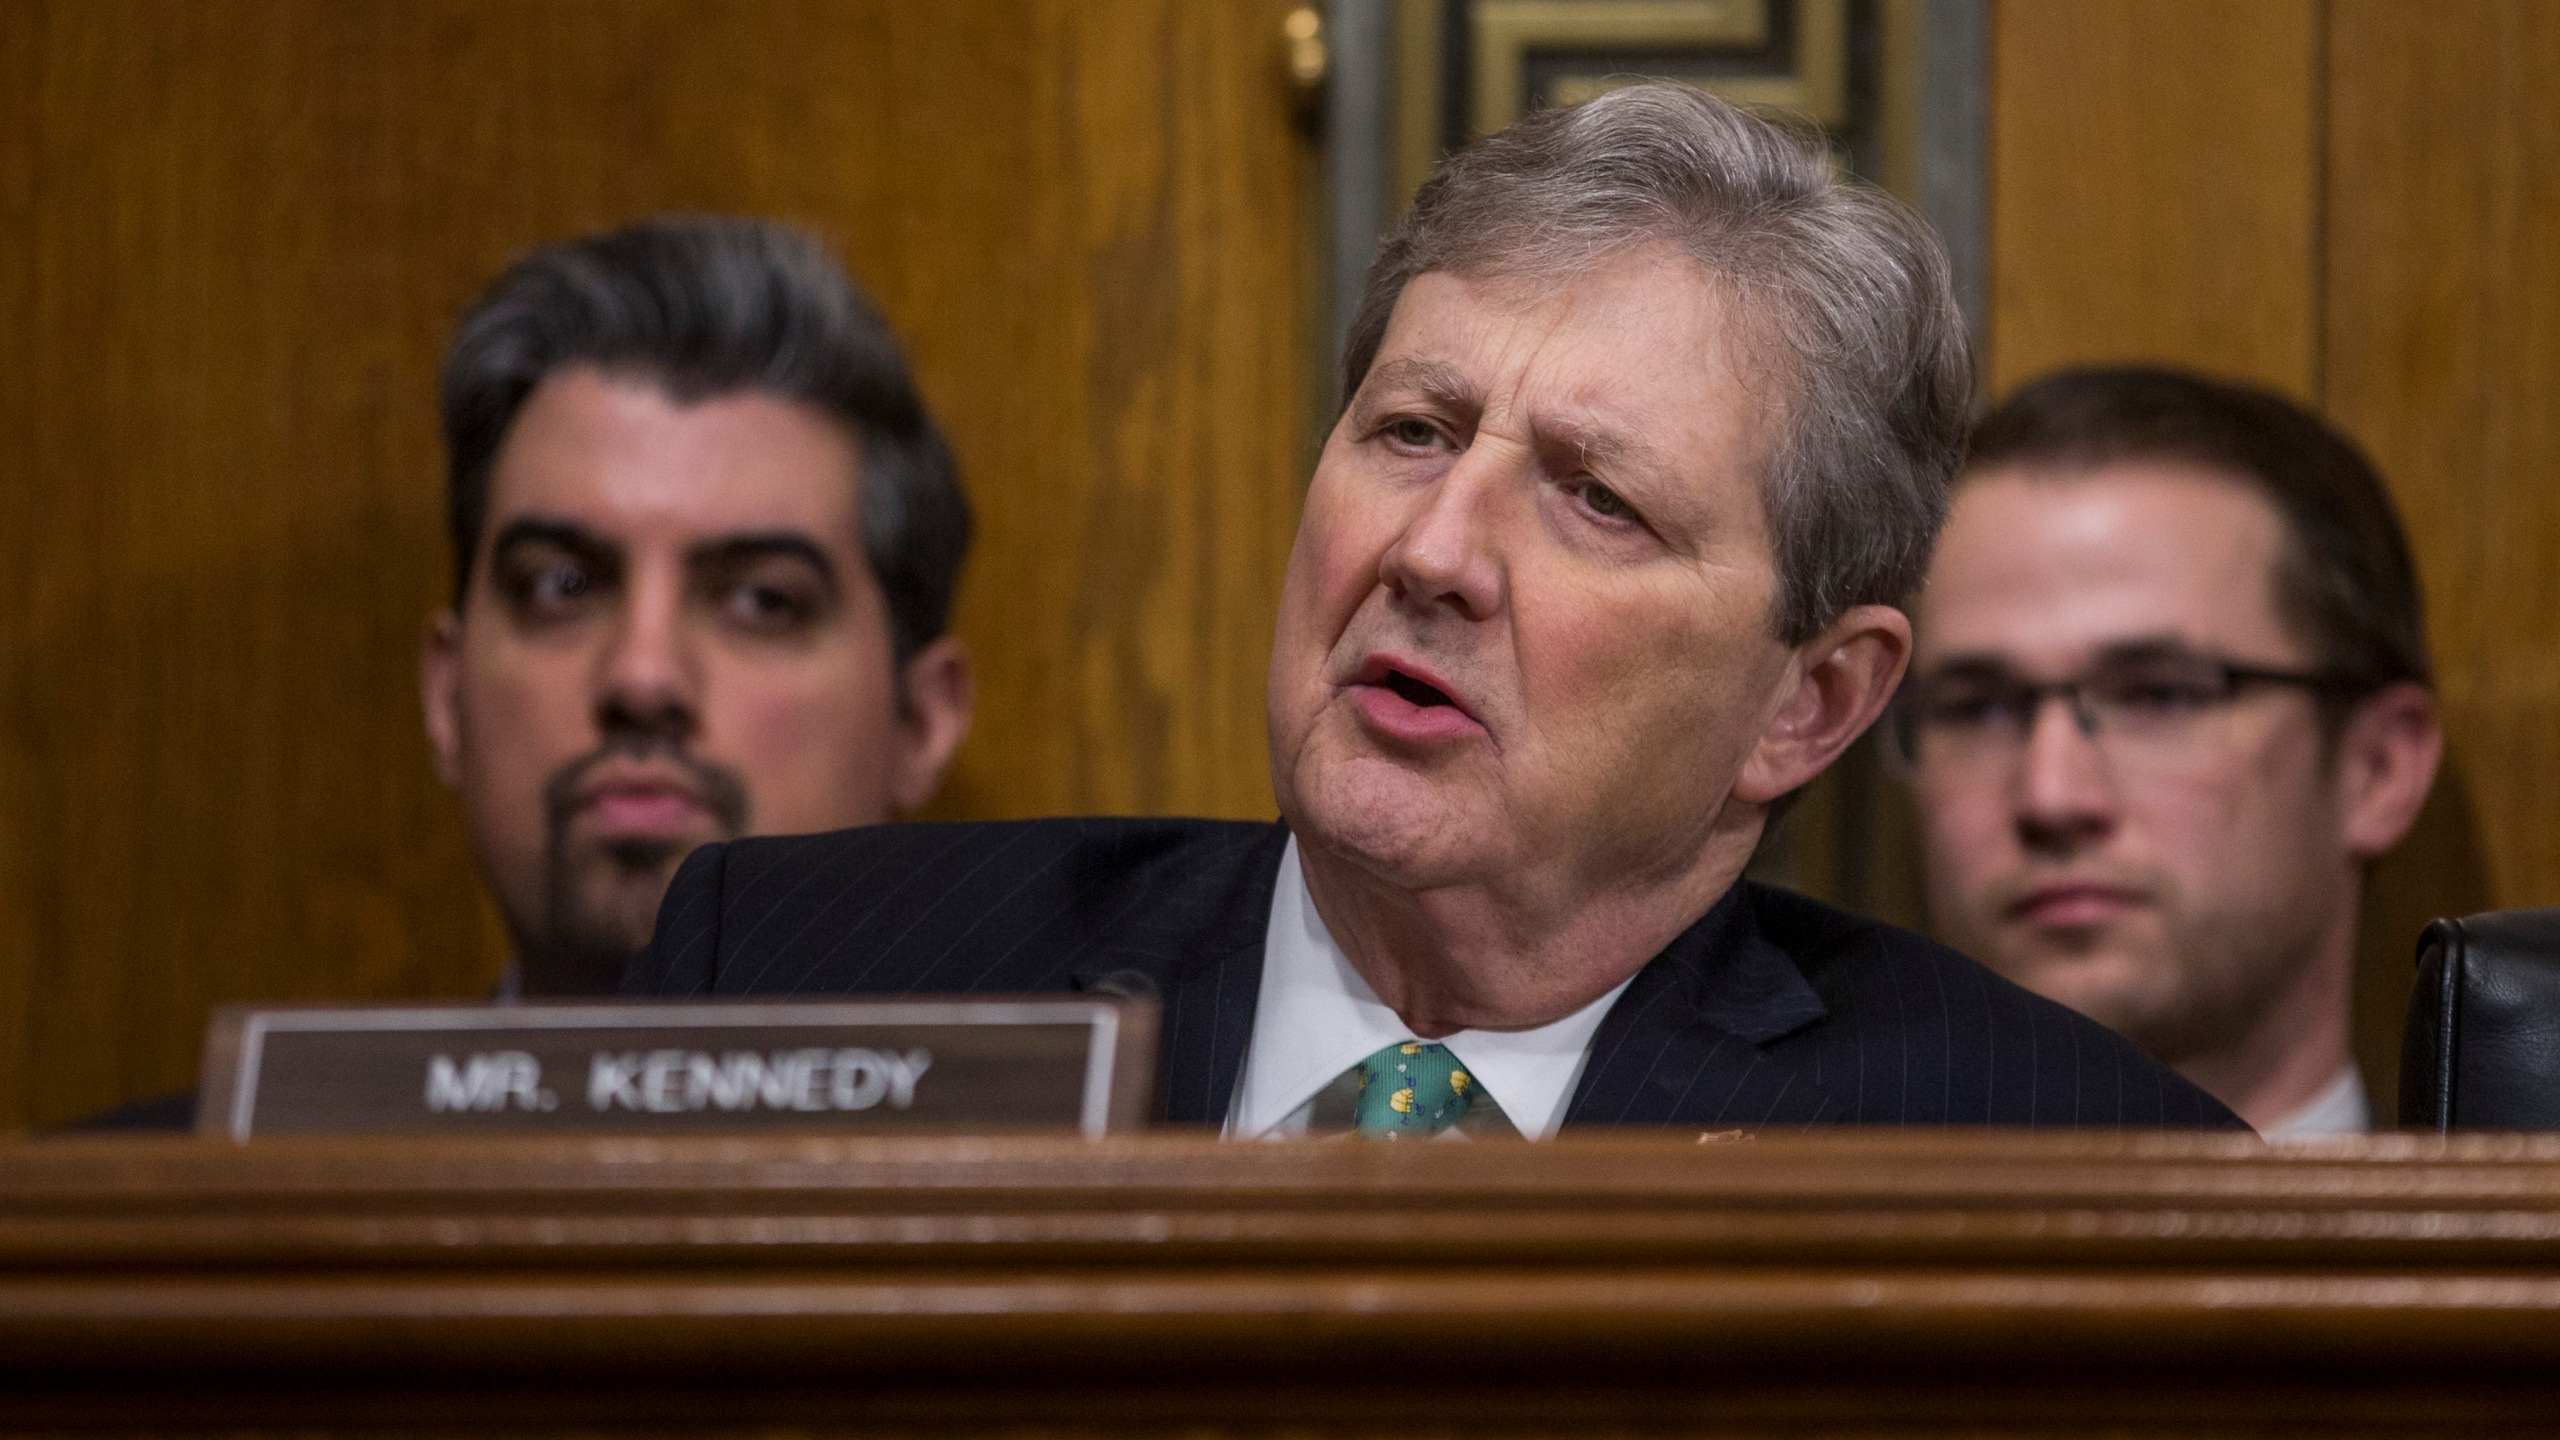 Sen. John Kennedy (R-LA) speaks during a Senate Judiciary confirmation hearing for Neomi Rao, President Donald Trump's nominee to be U.S. circuit judge for the District of Columbia Circuit, on Capitol Hill on February 5, 2019 in Washington, DC.(Credit: Zach Gibson/Getty Images)